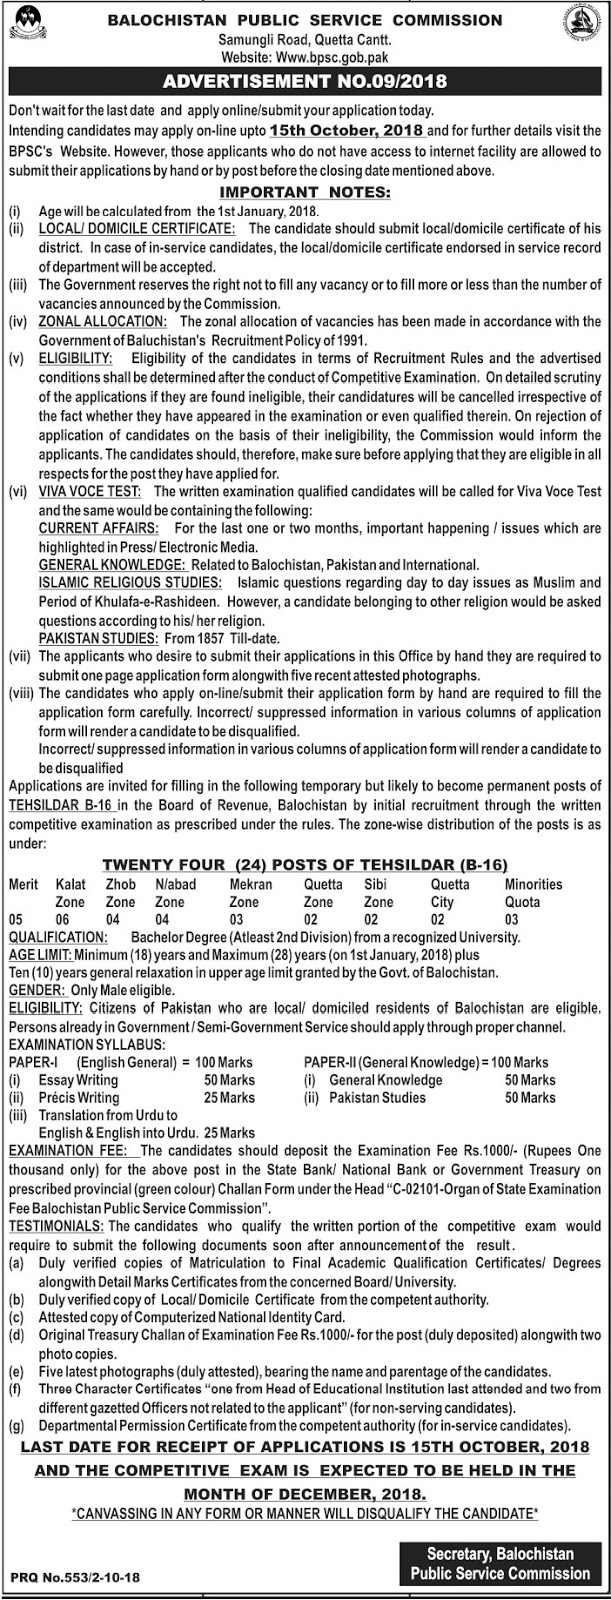 Latest Vacancies Announced in Balochistan Public Service Commission BPSC 3 October 2018 - Naya Pak Jobs